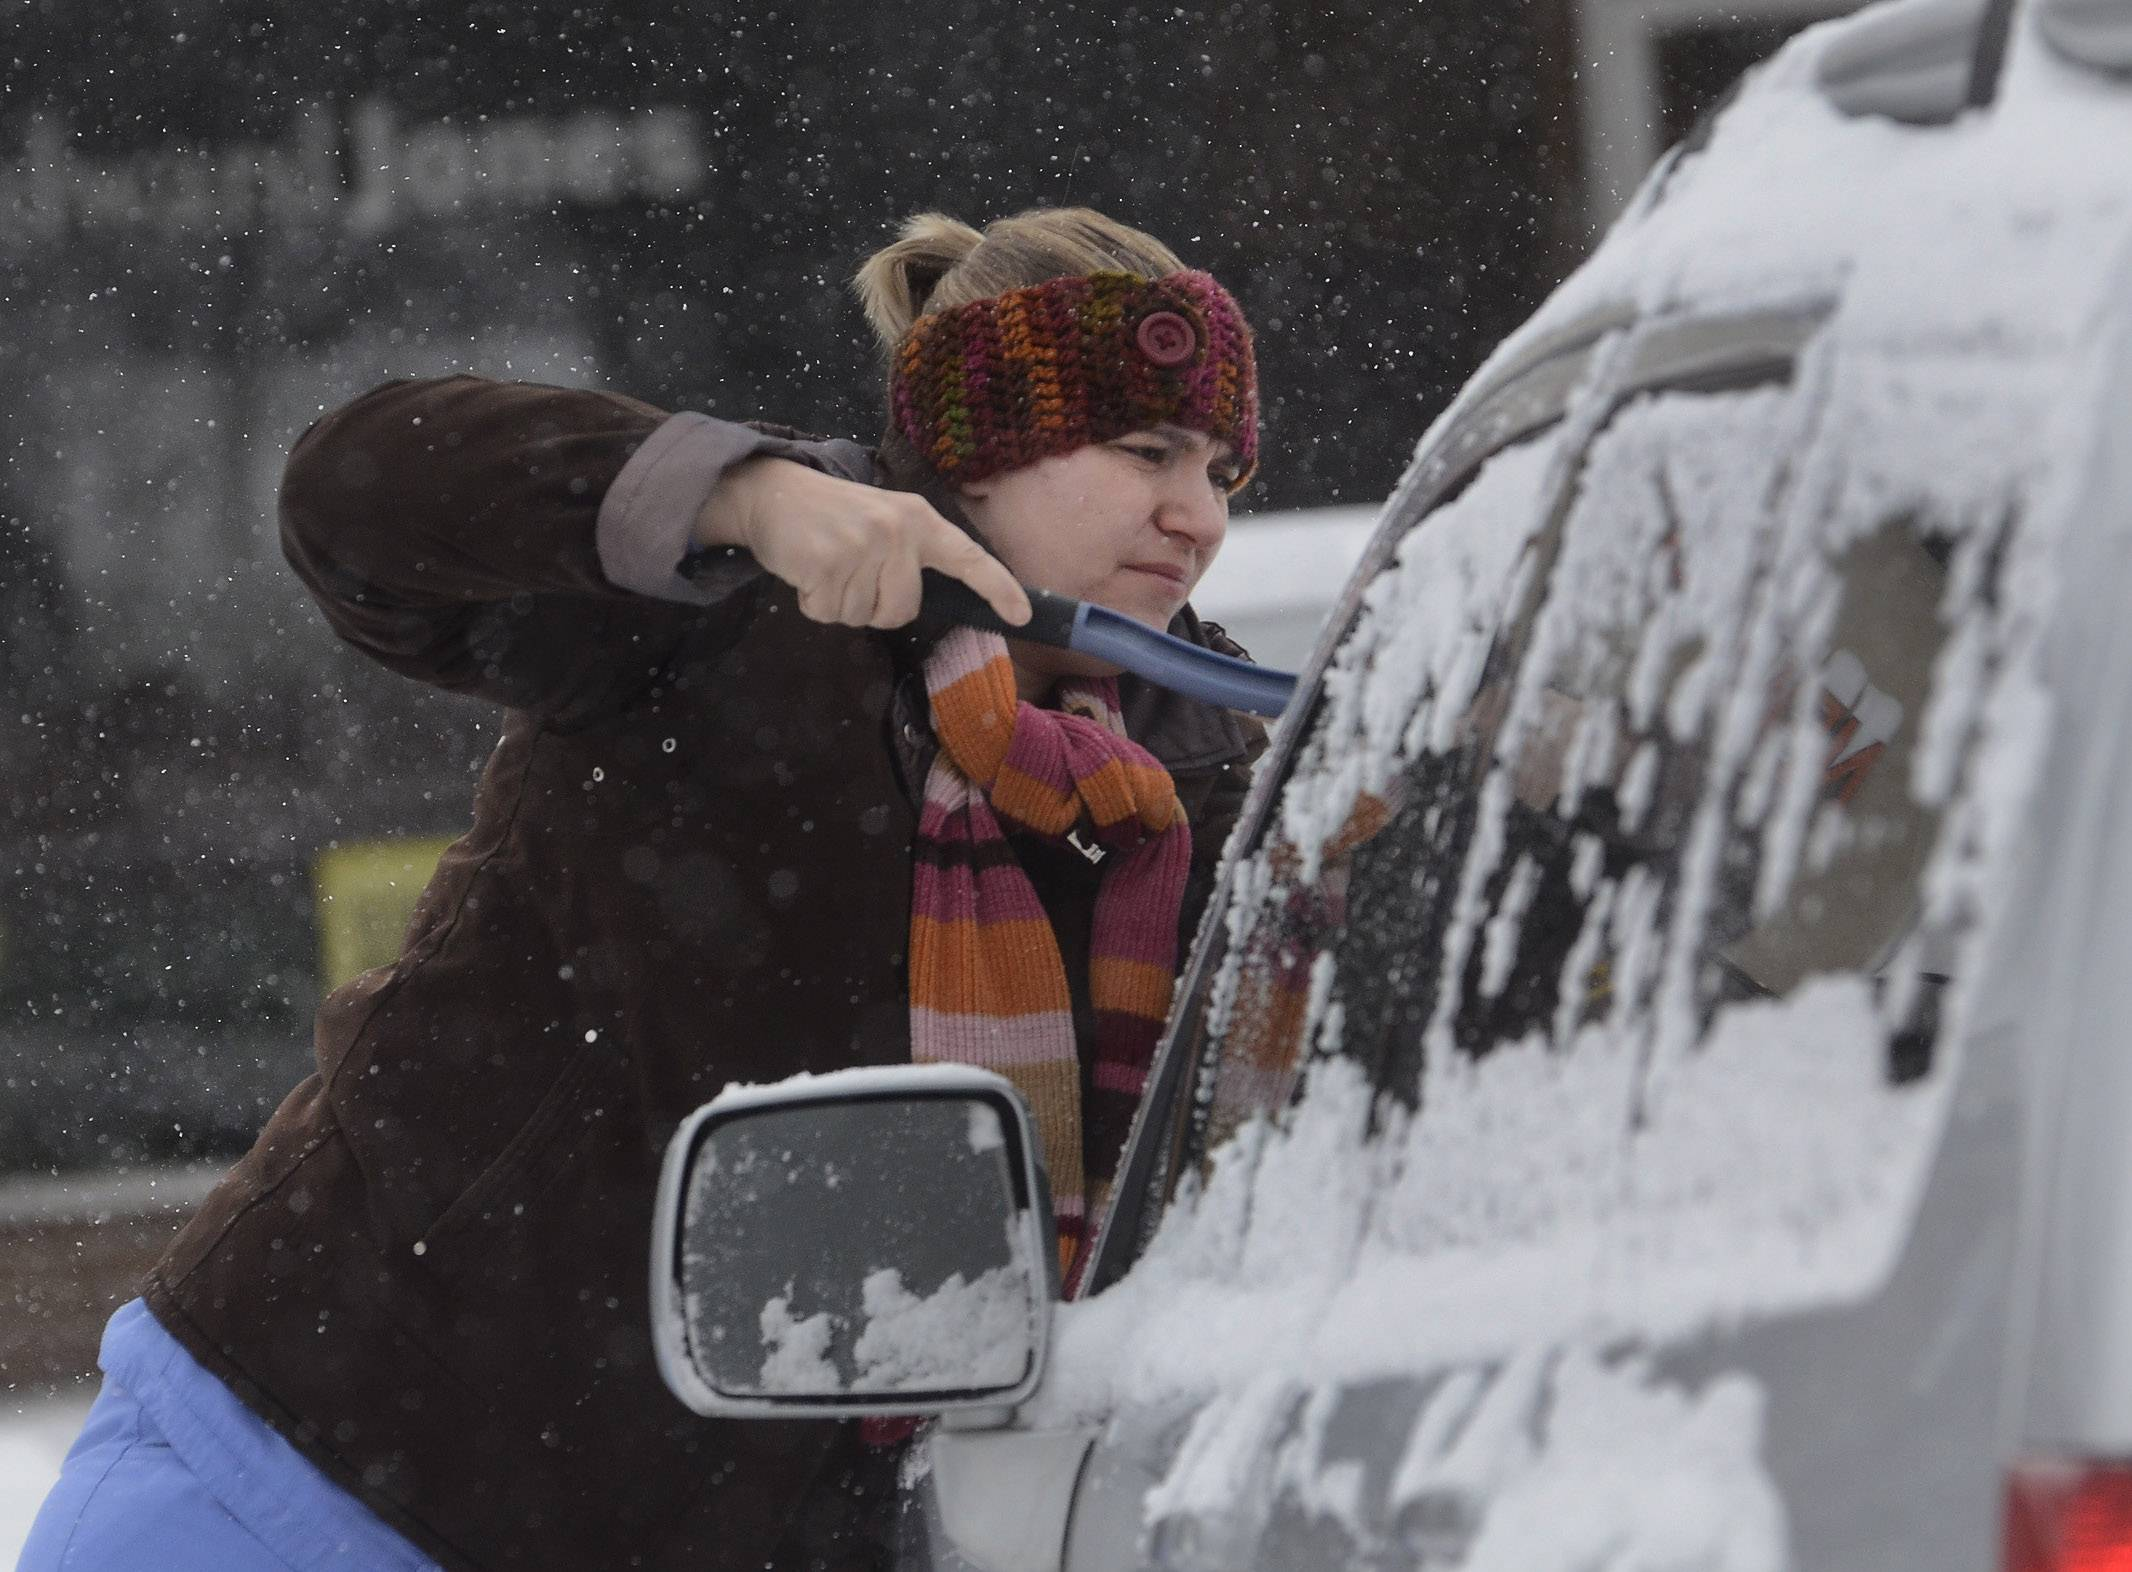 Jill Kaergard of Schaumburg scrapes off the snow from her vehicle on a lunch break from her Dentist's office job at Campbell and Wilke in Arlington Heights.